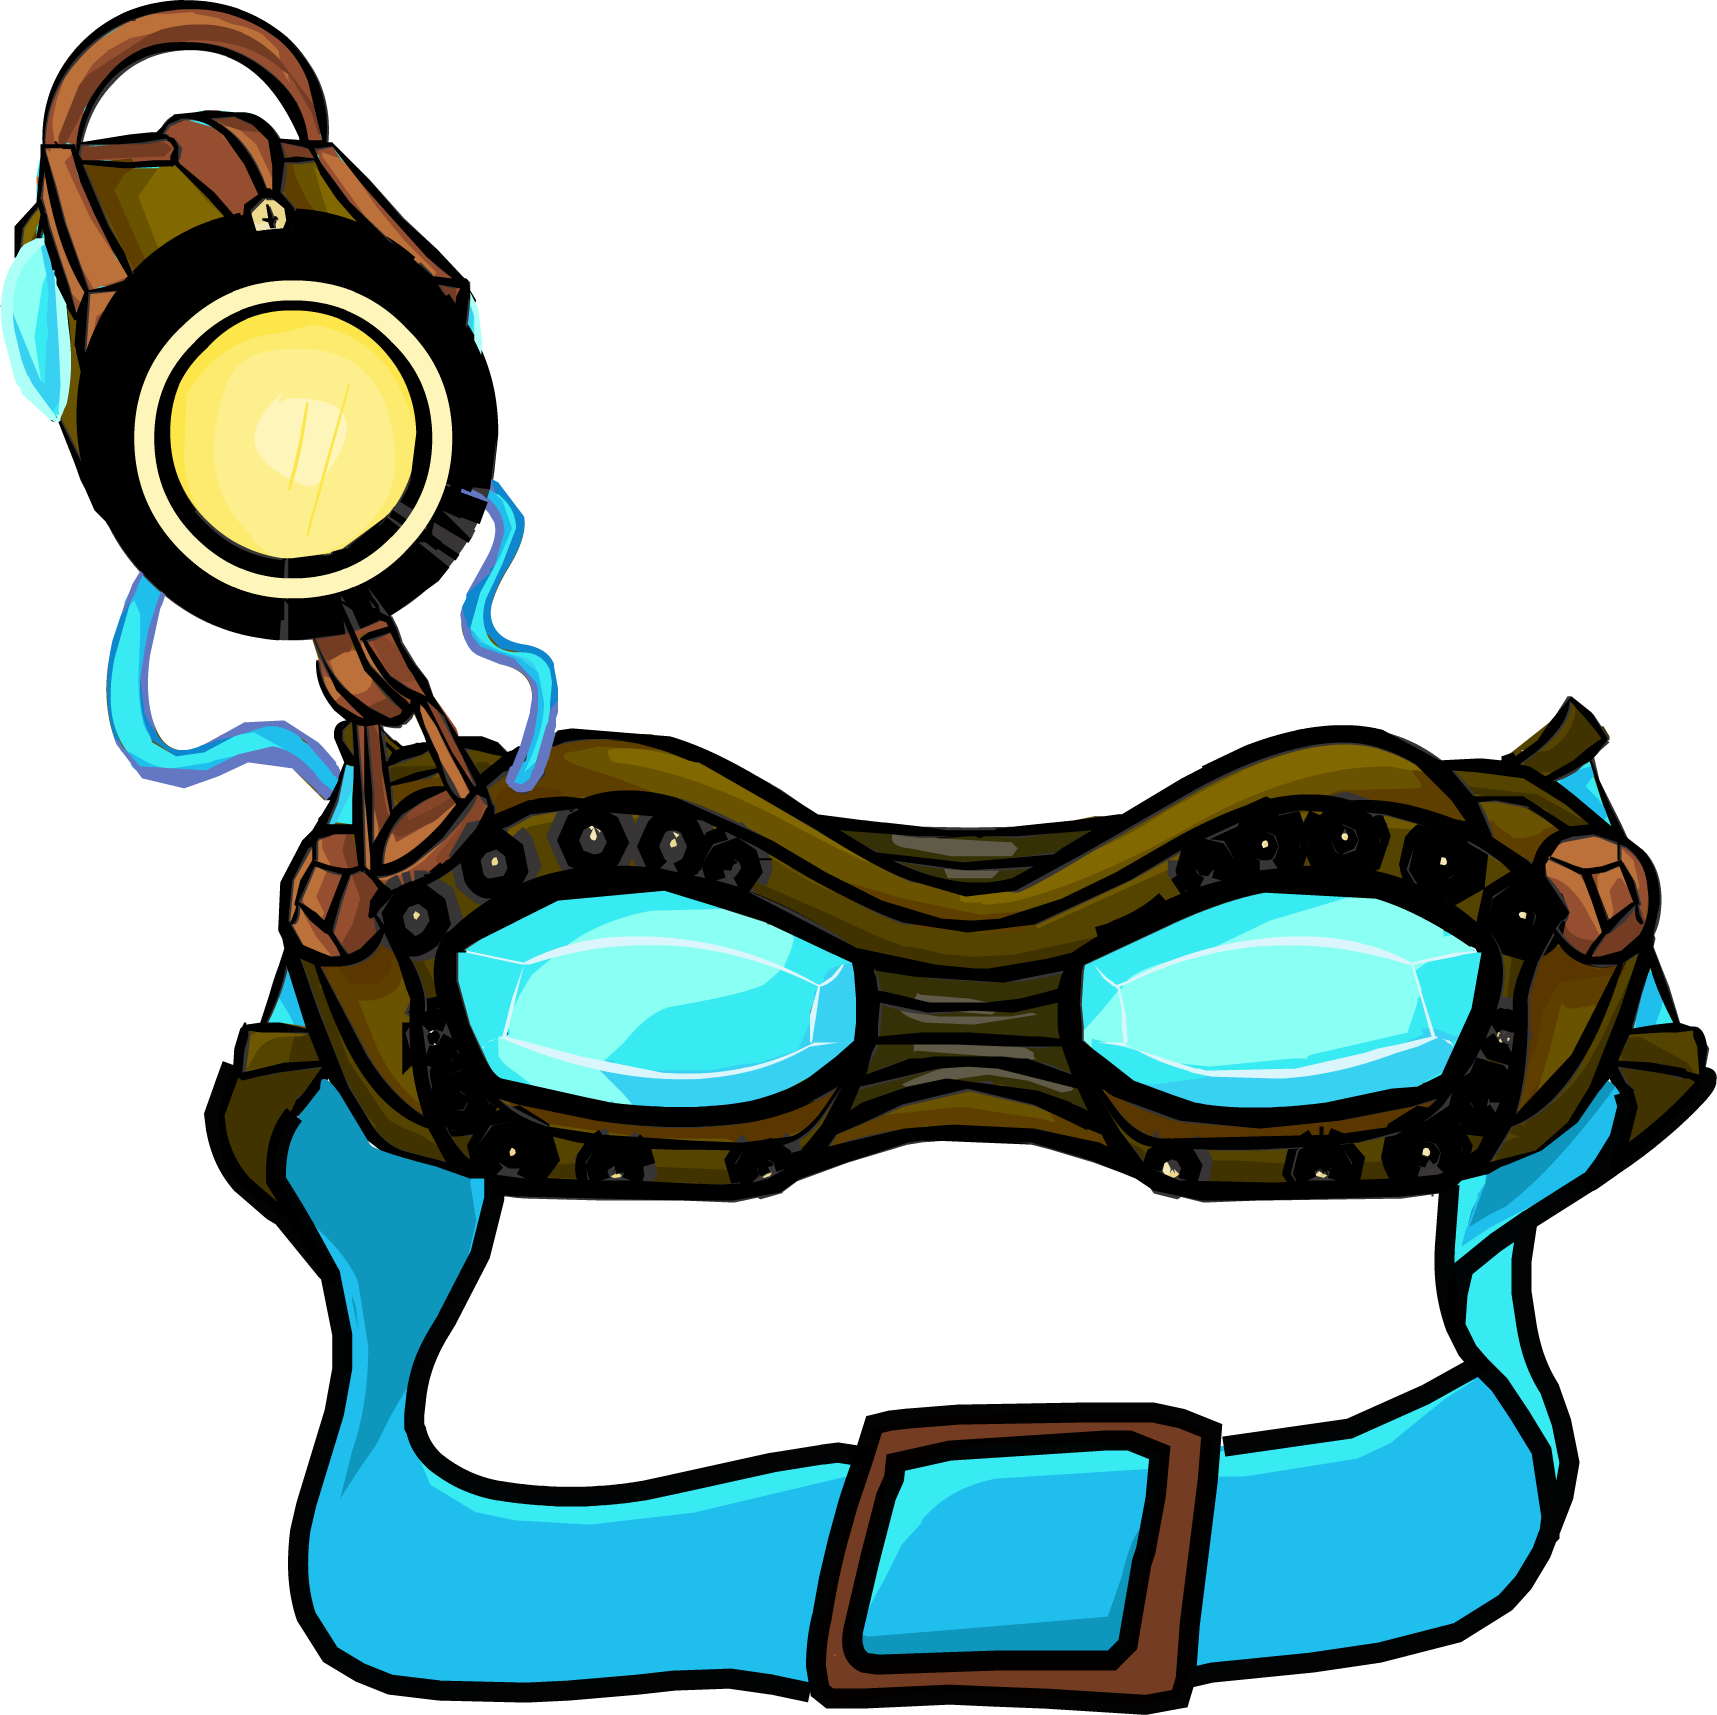 Goggles clipart lab. Ghost club penguin wiki